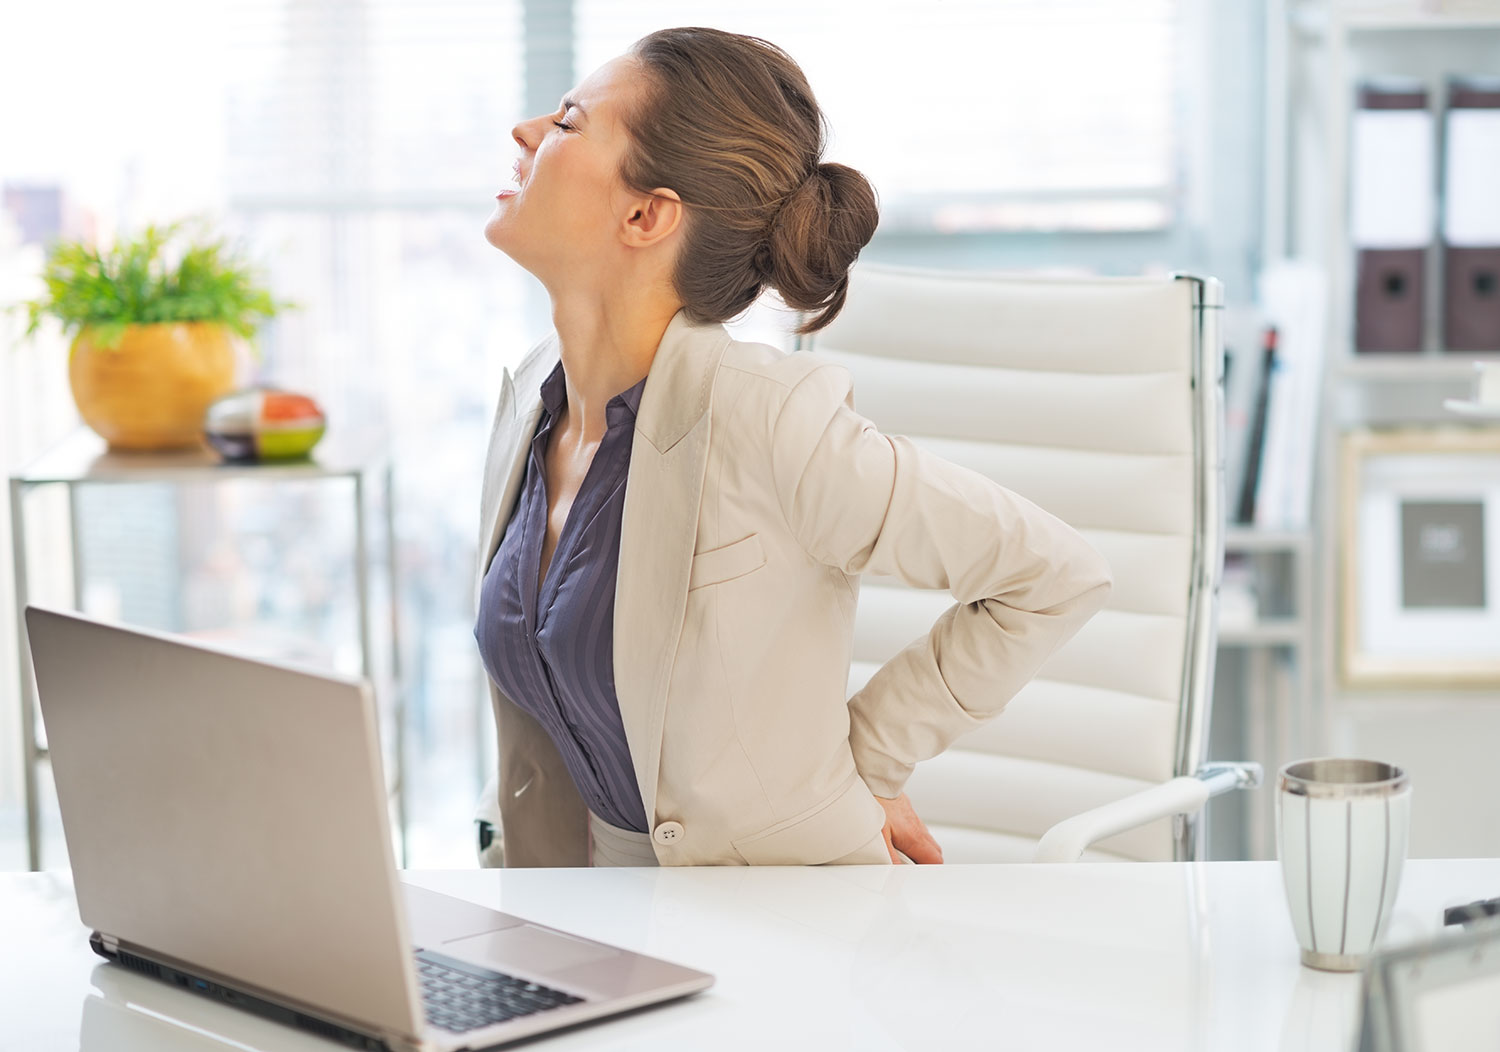 15 Minute Office Yoga for Back Pain